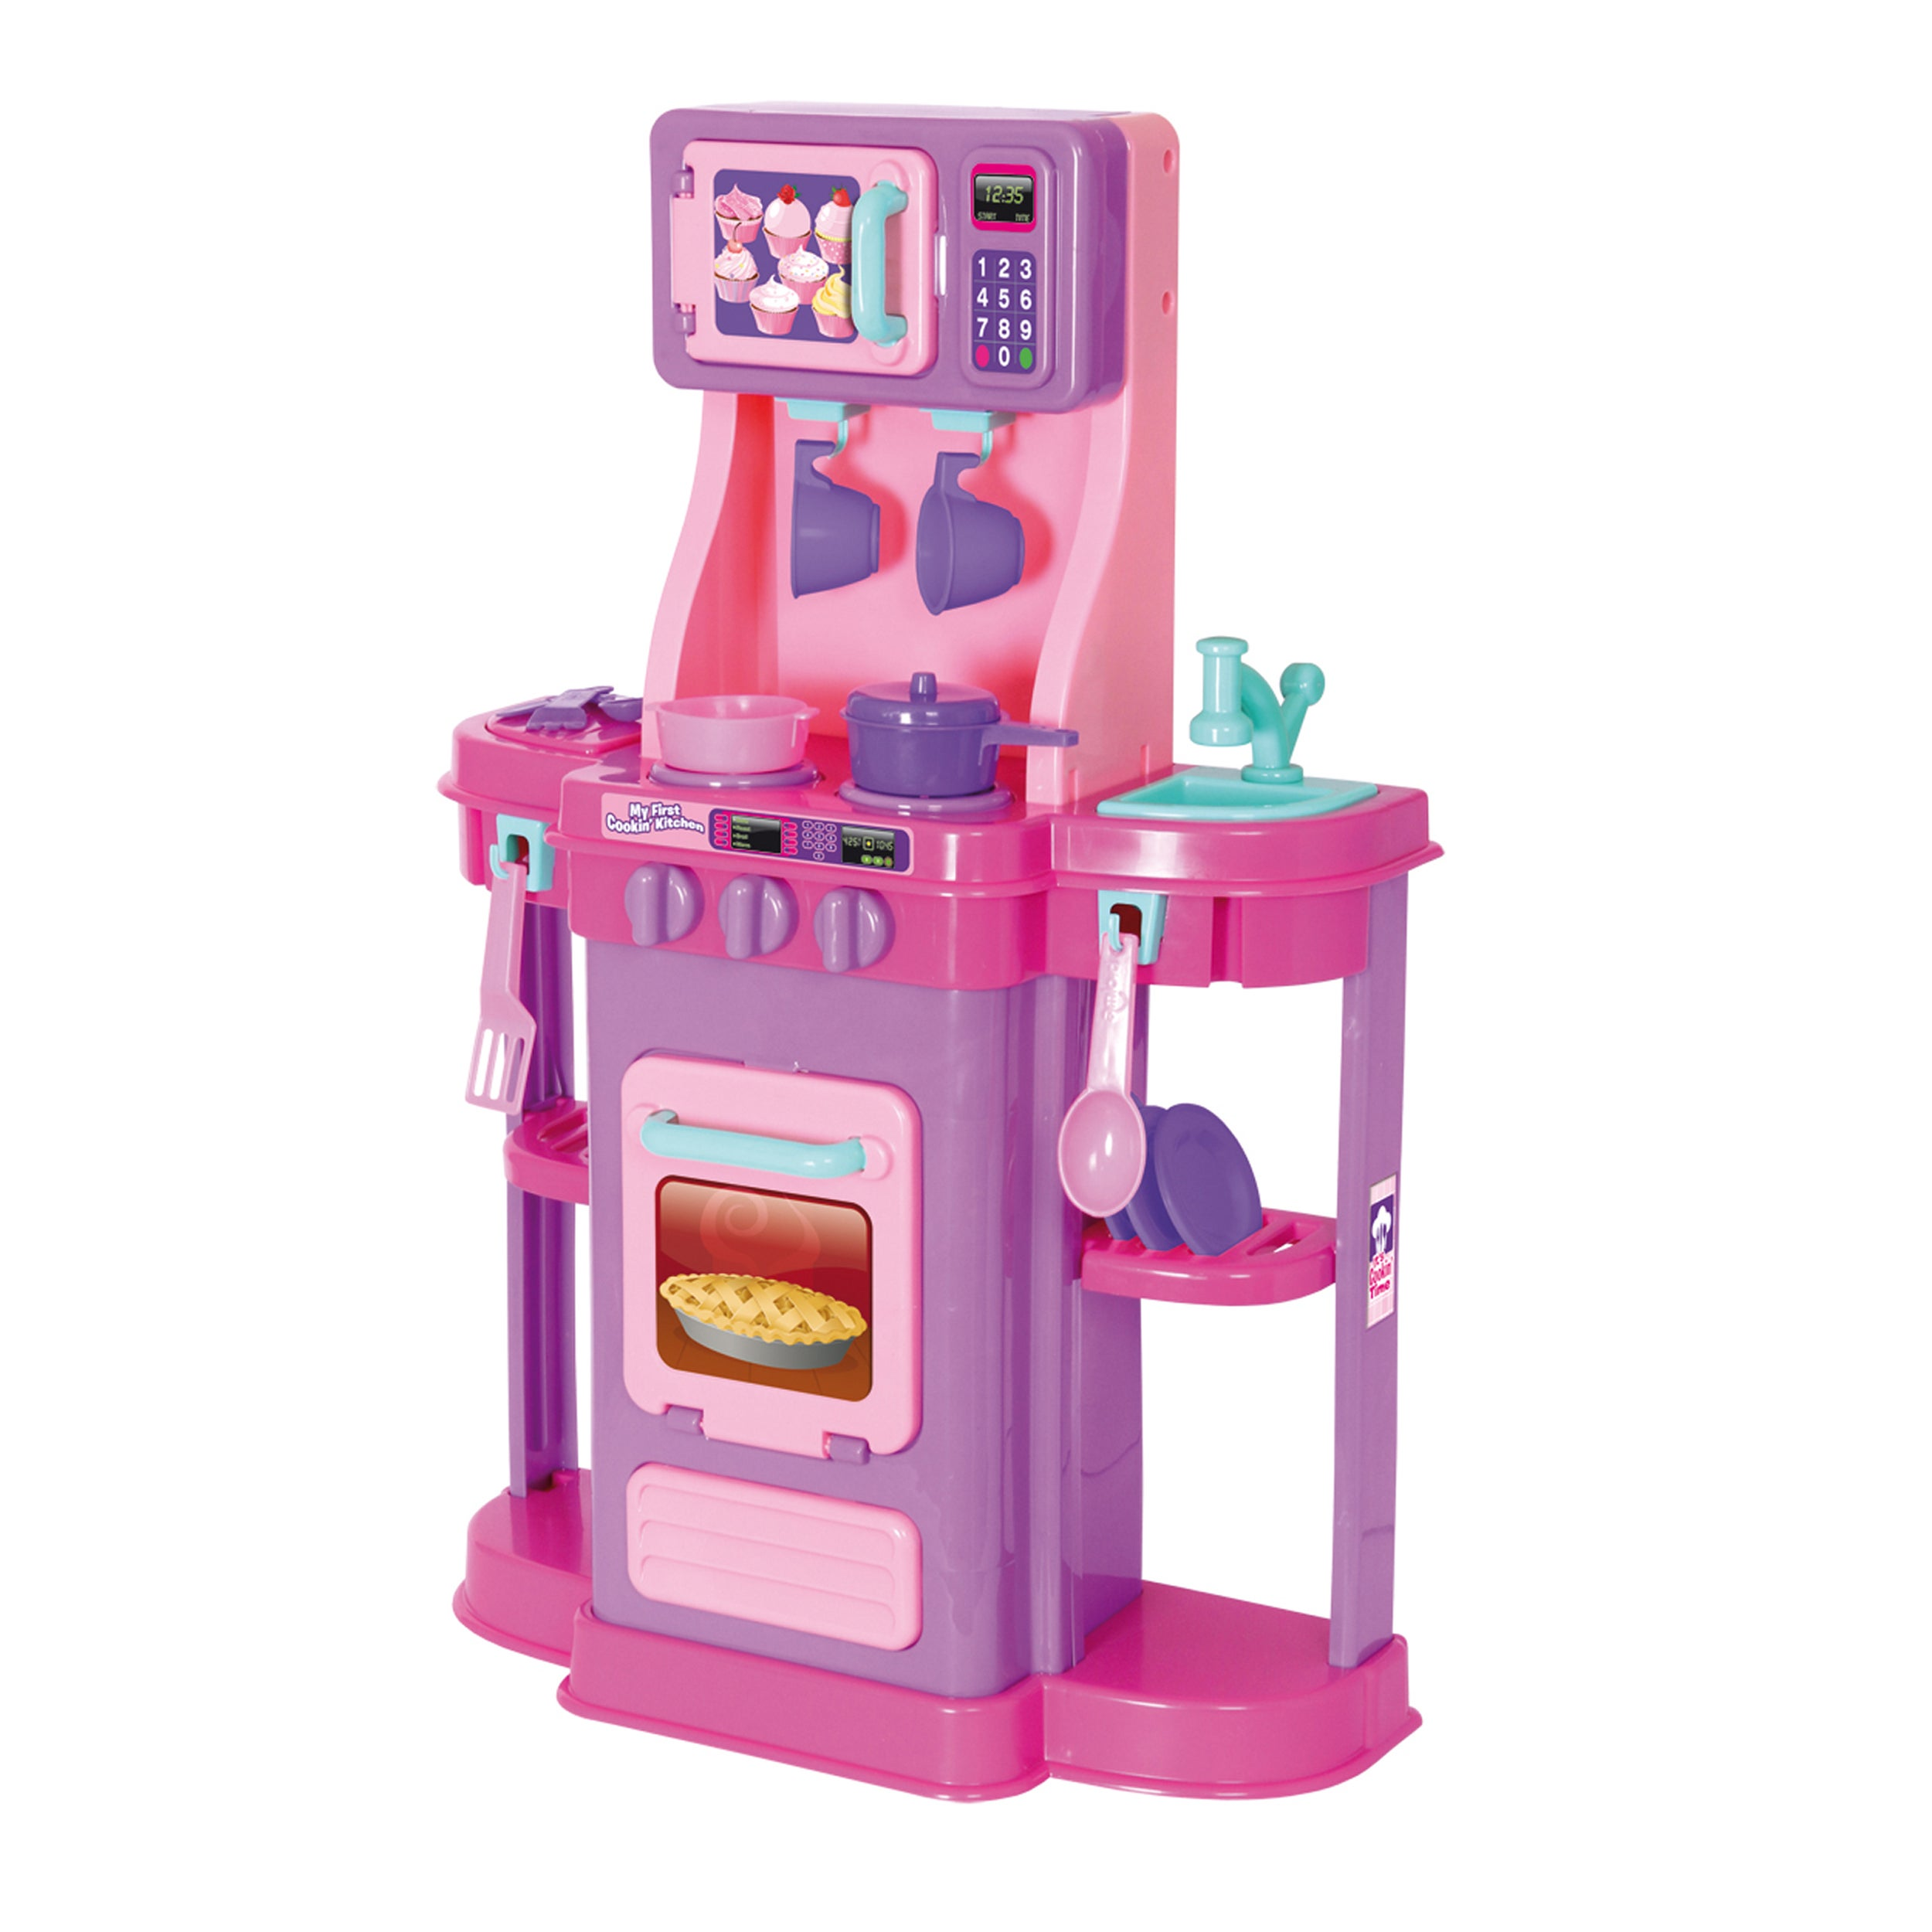 Amloid My First Cookin Kitchen Playset Free Shipping Today 7578224